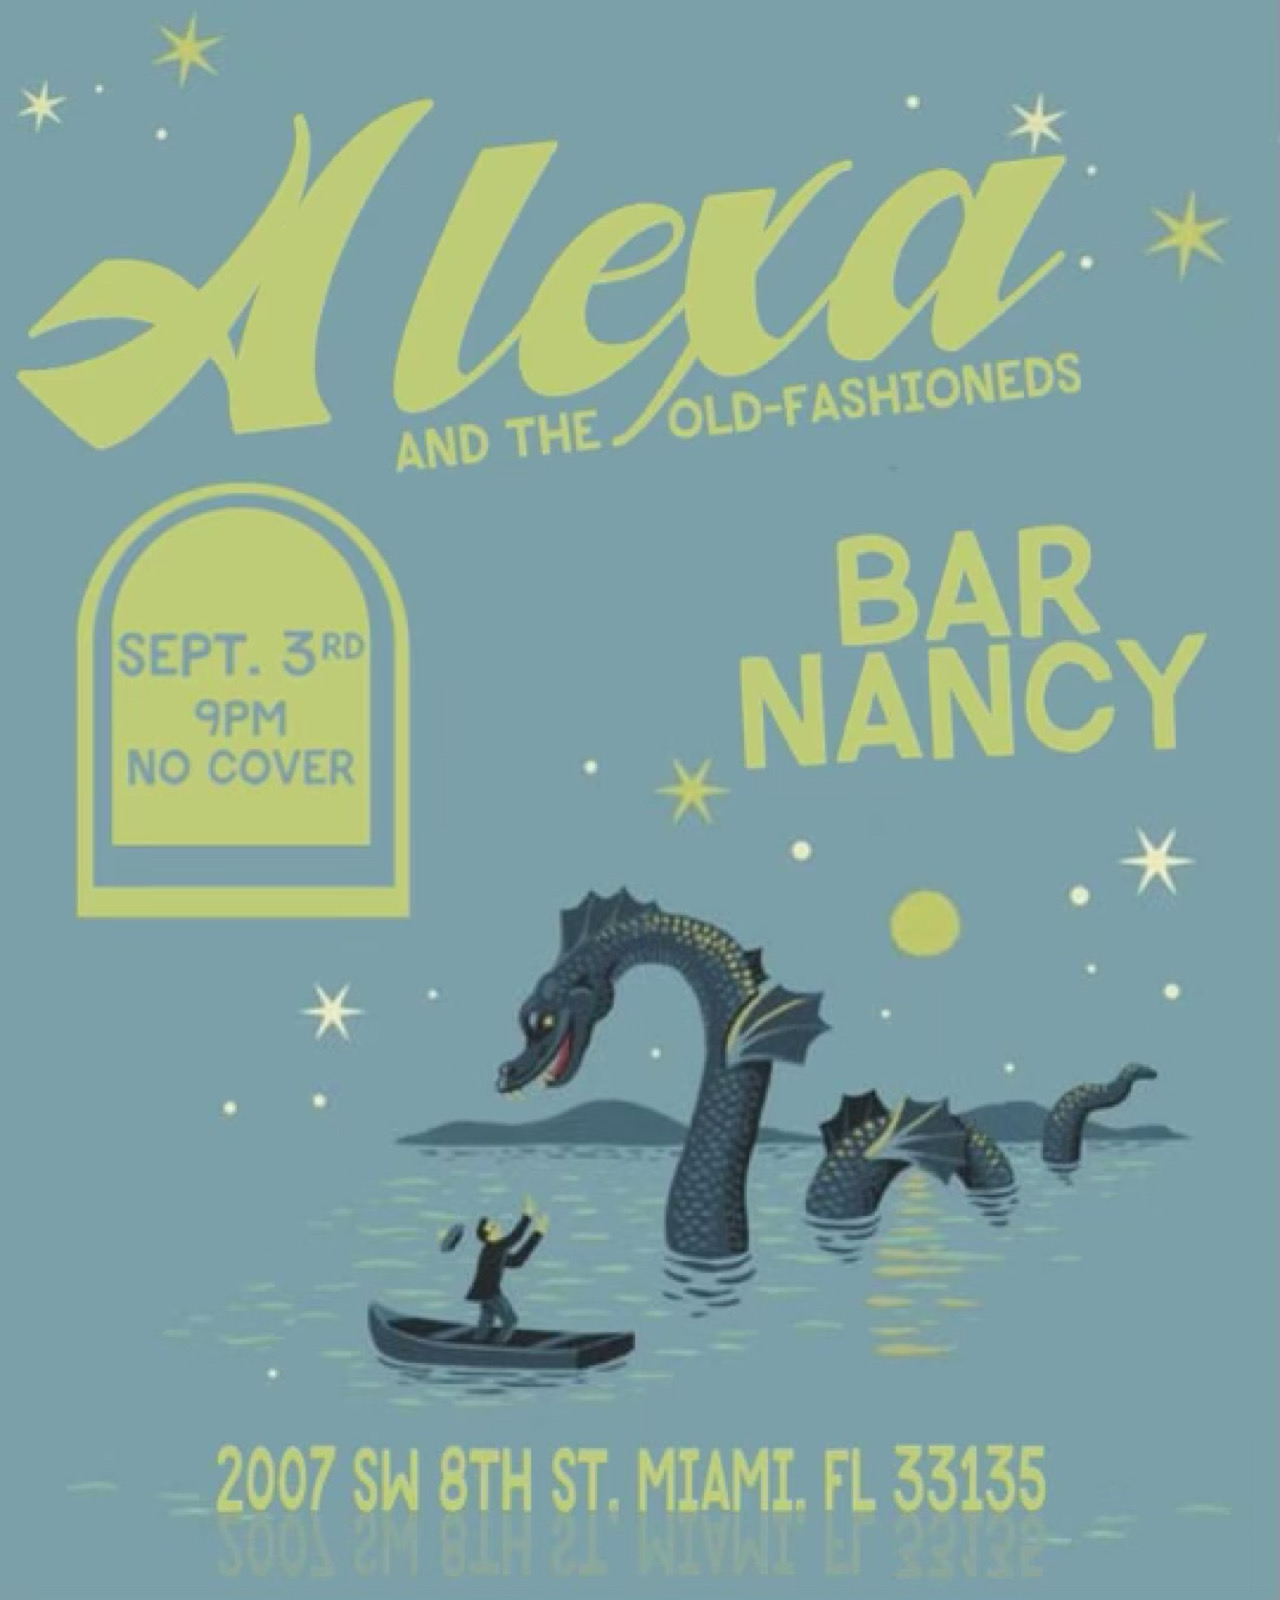 Alexa and The Old-Fashioneds at Bar Nancy Sept 3rd at 9PM